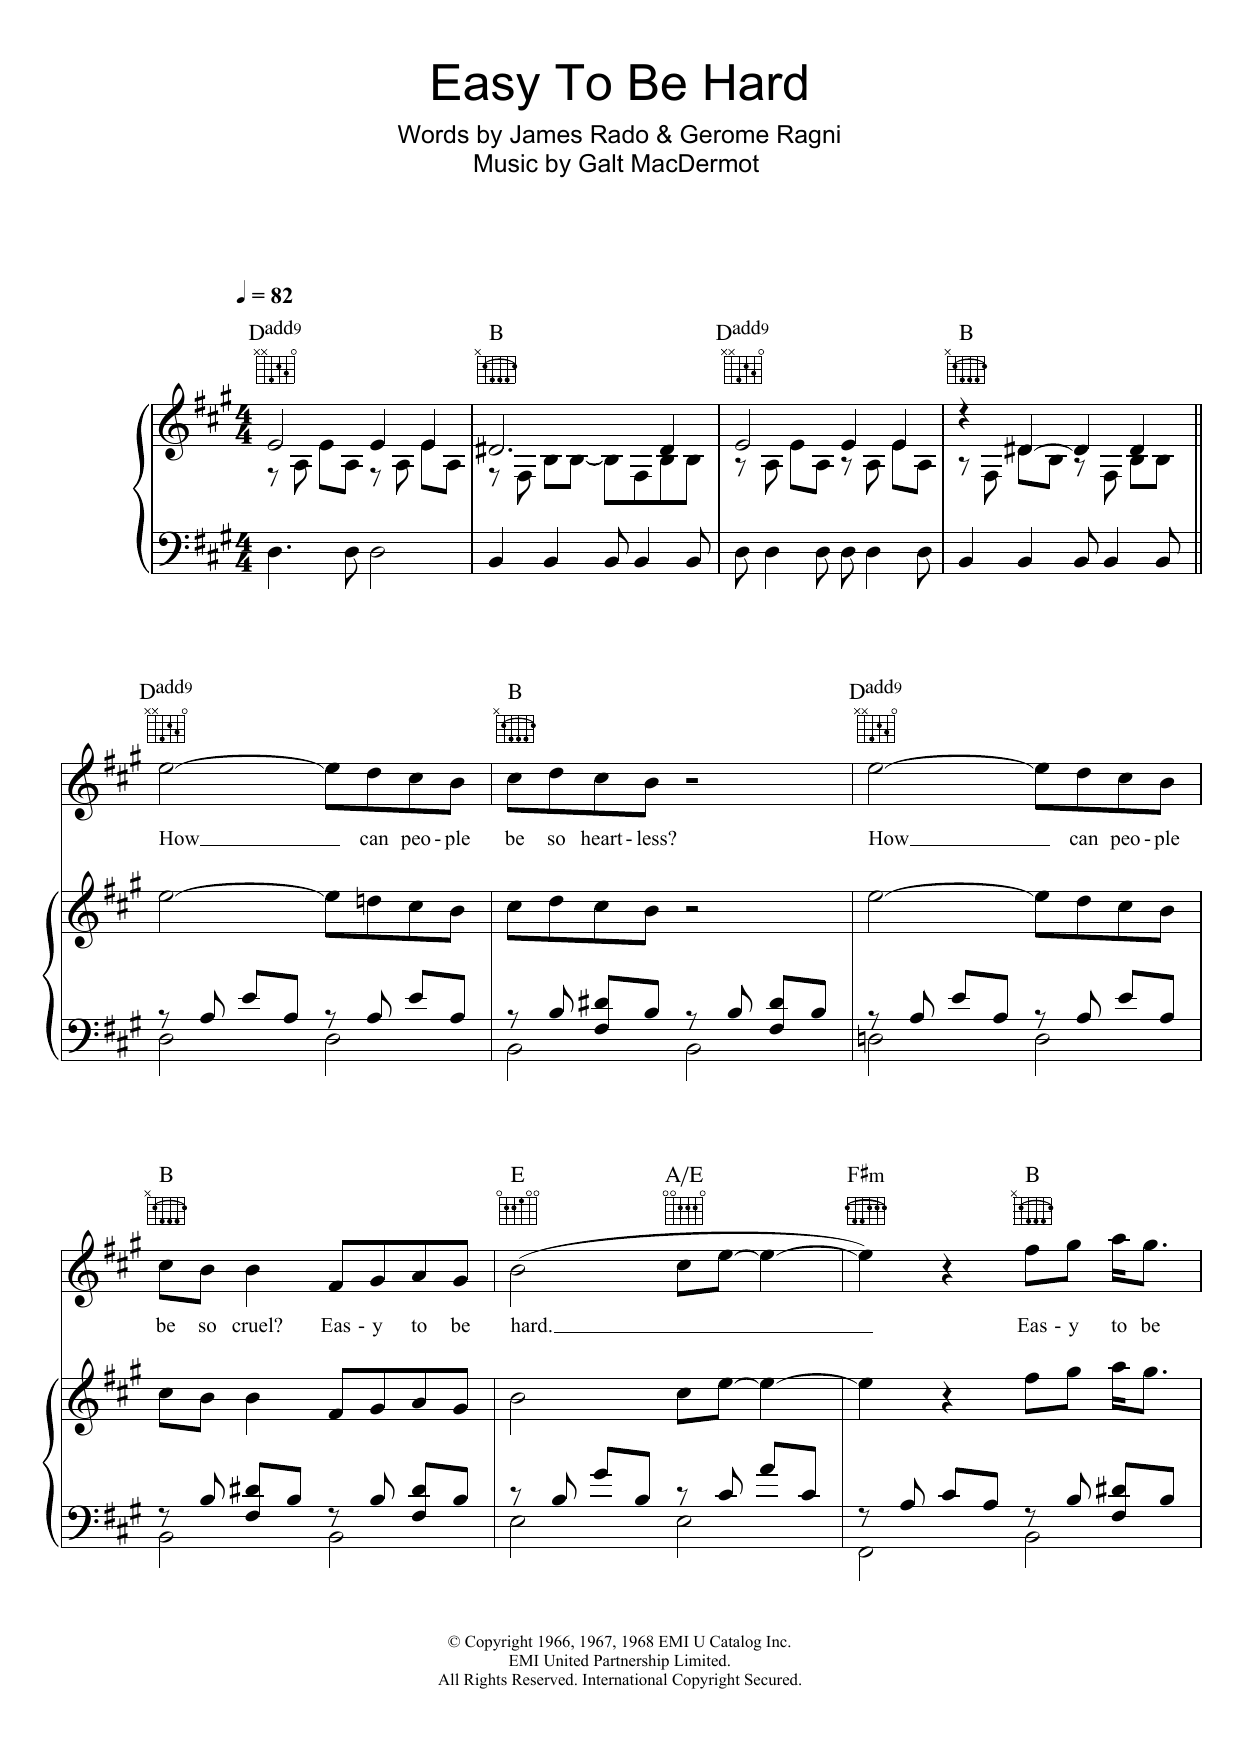 Easy To Be Hard (from 'Hair') Sheet Music